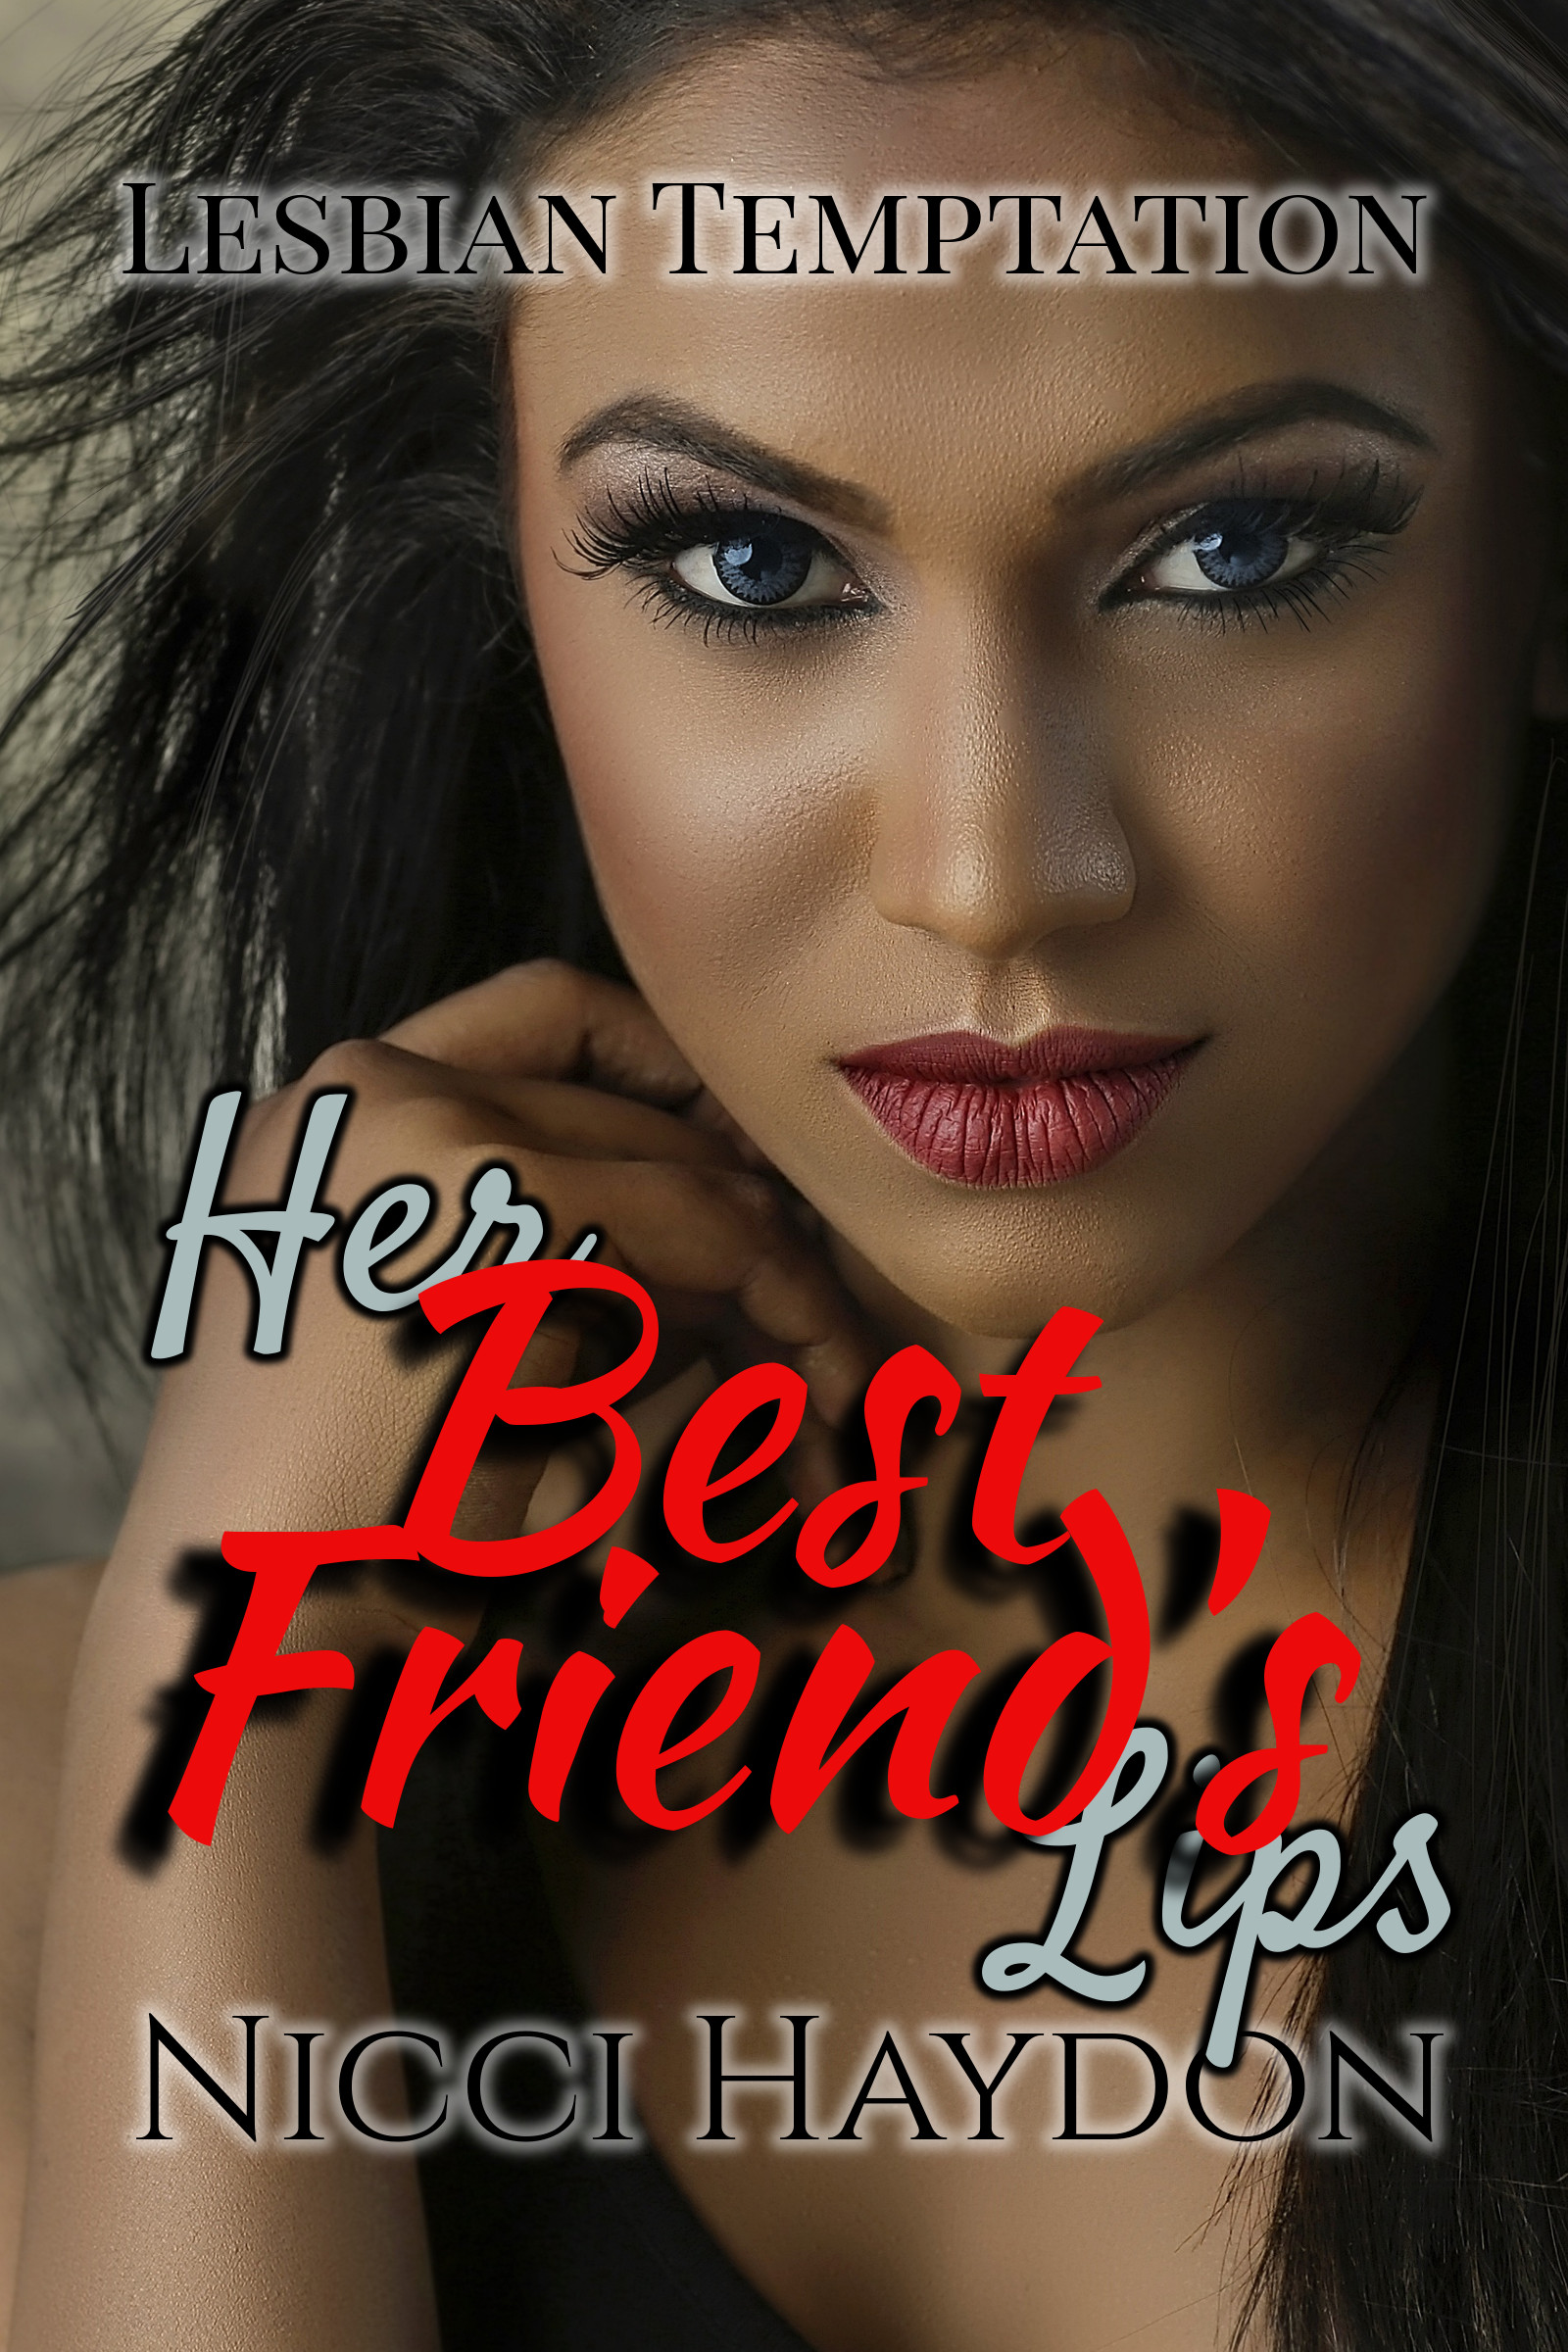 Her Best Friend's Lips (Lesbian Temptation Book 4)